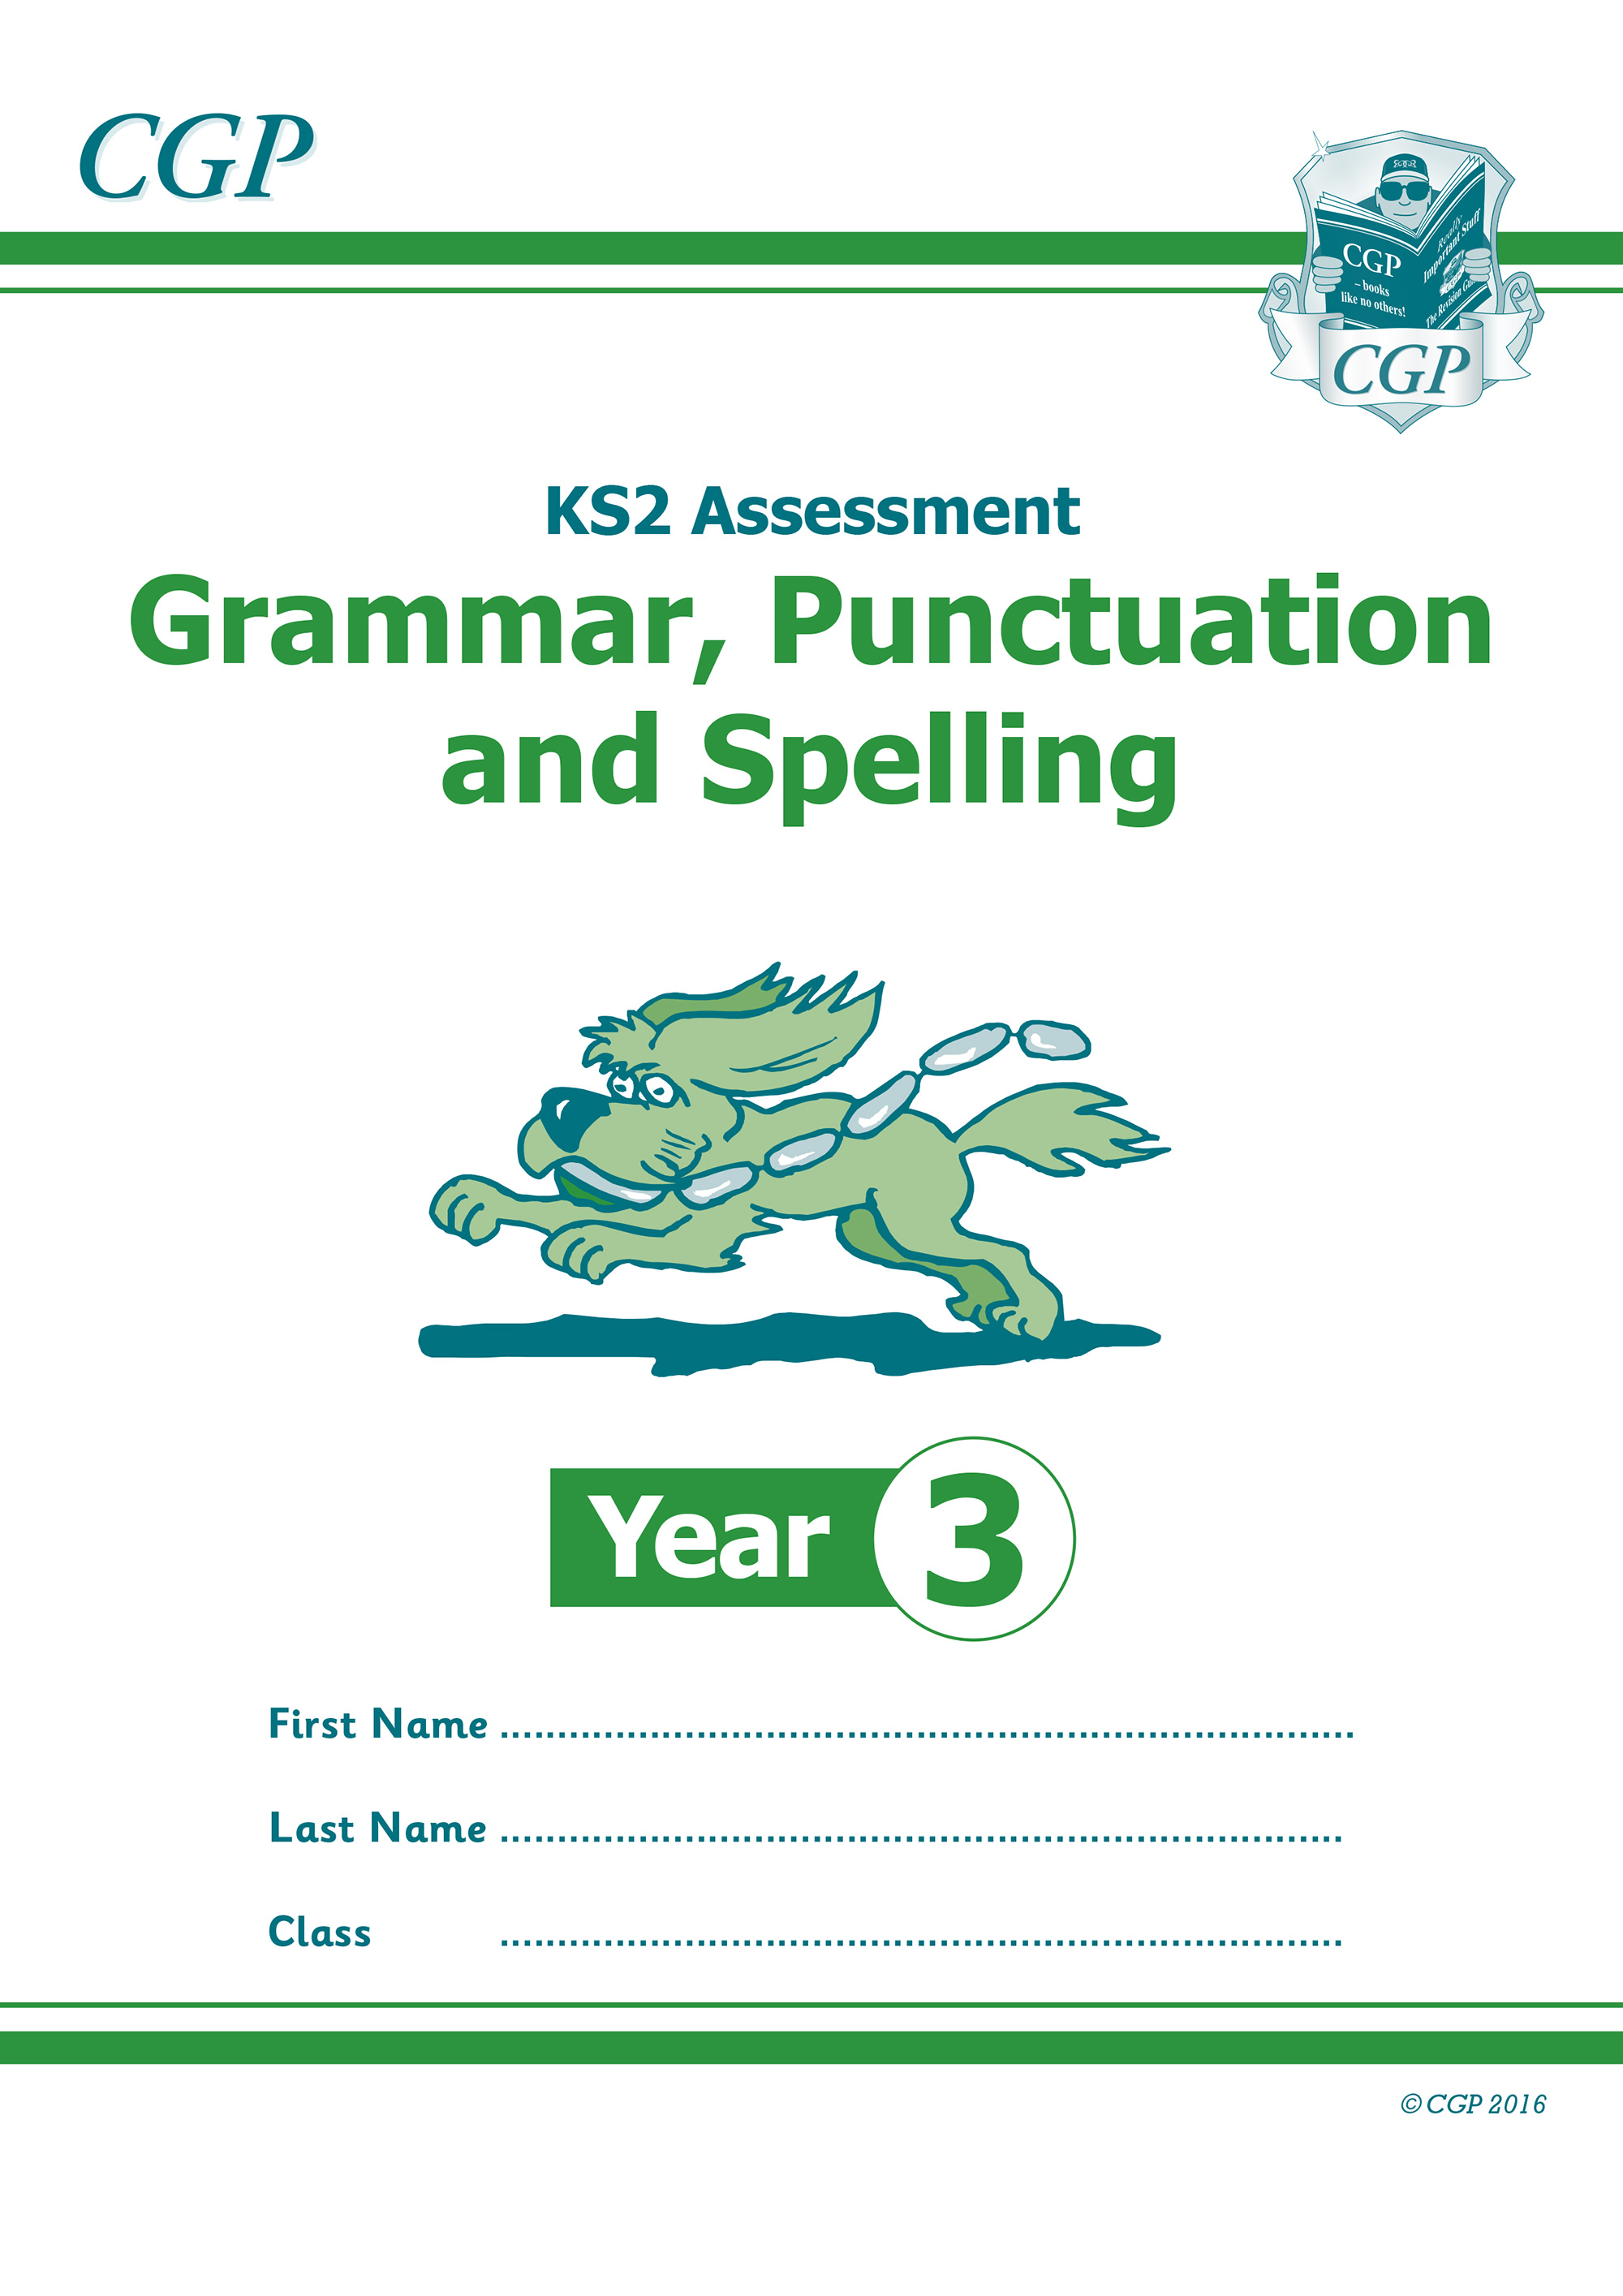 E3GP21 - KS2 Assessment: Spelling, Punctuation & Grammar - Year 3 Test